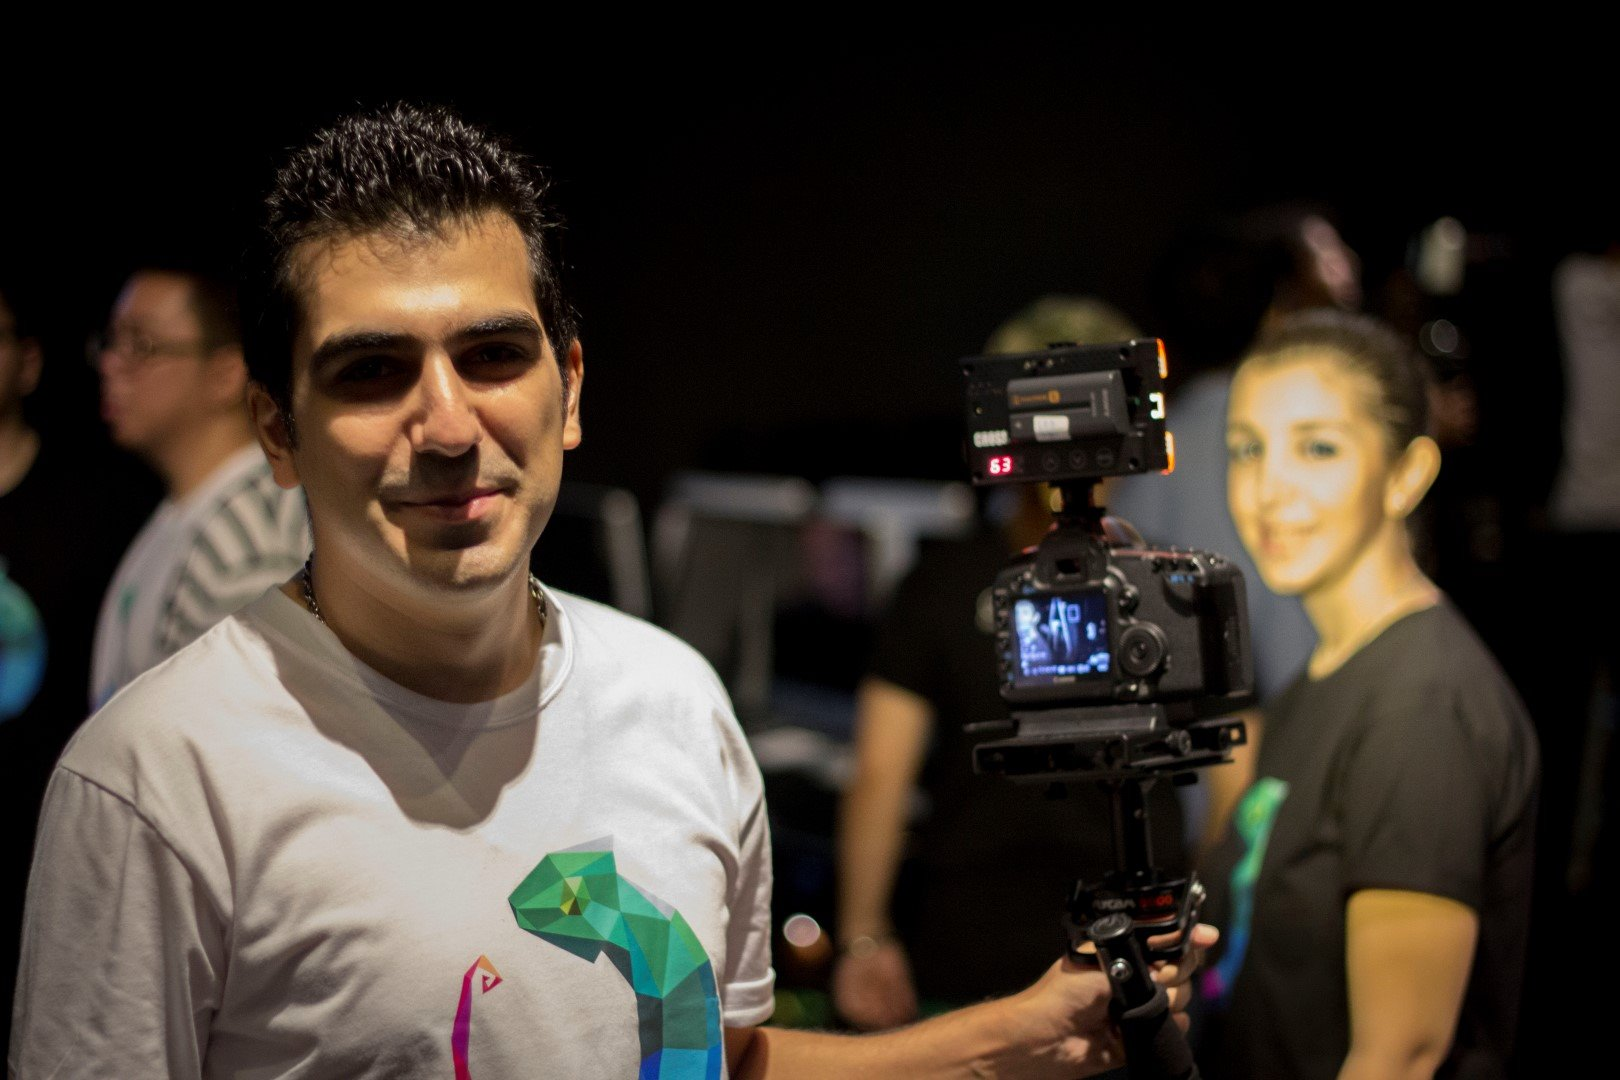 Alisam & Samaneh, the power couple responsible for our amazing video documentaries